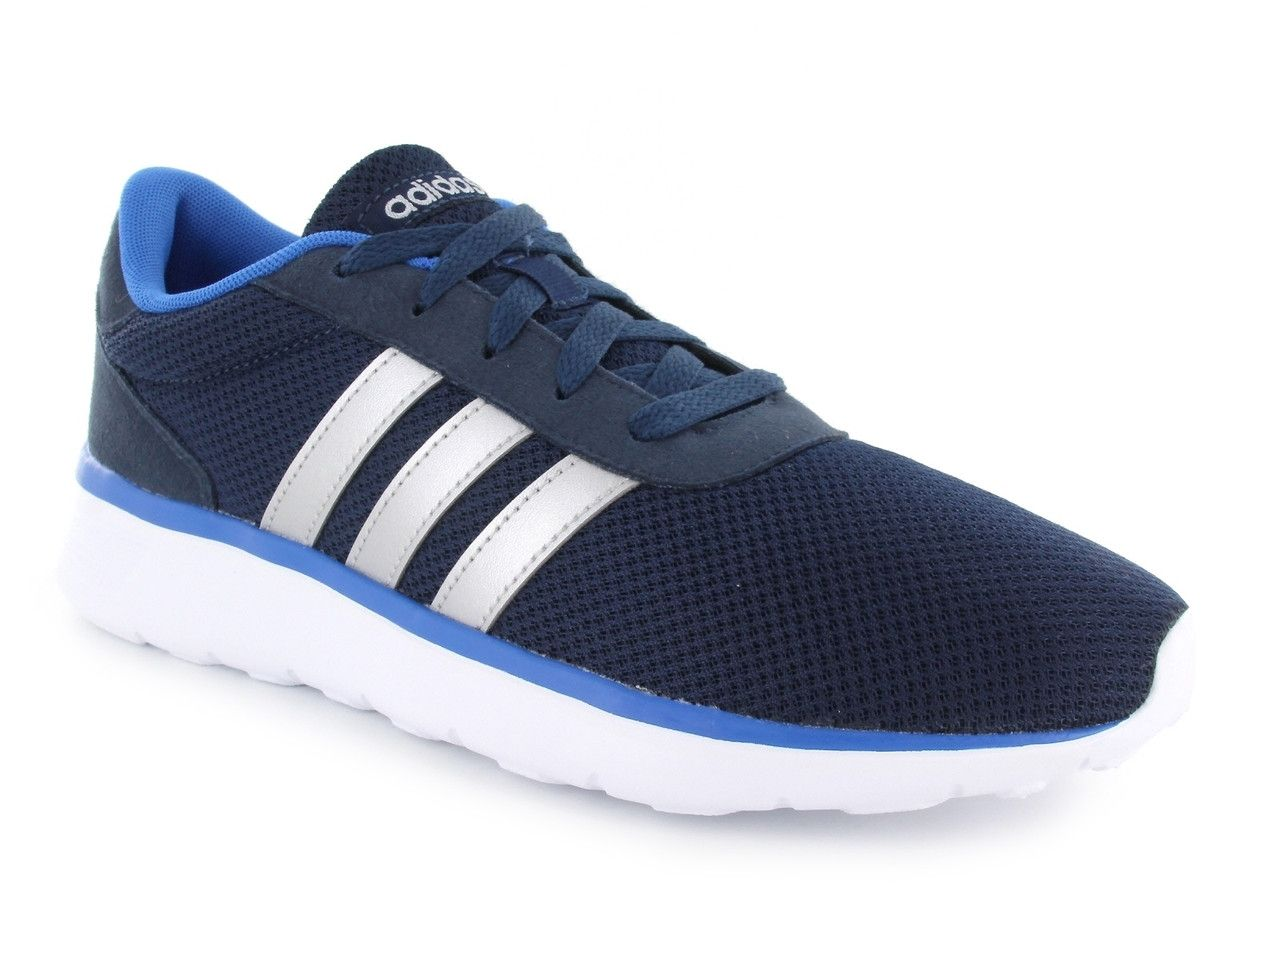 ed7b706c4cbc ... official store adidas neo label lite racer shoes navy blue f1ed0 d4071